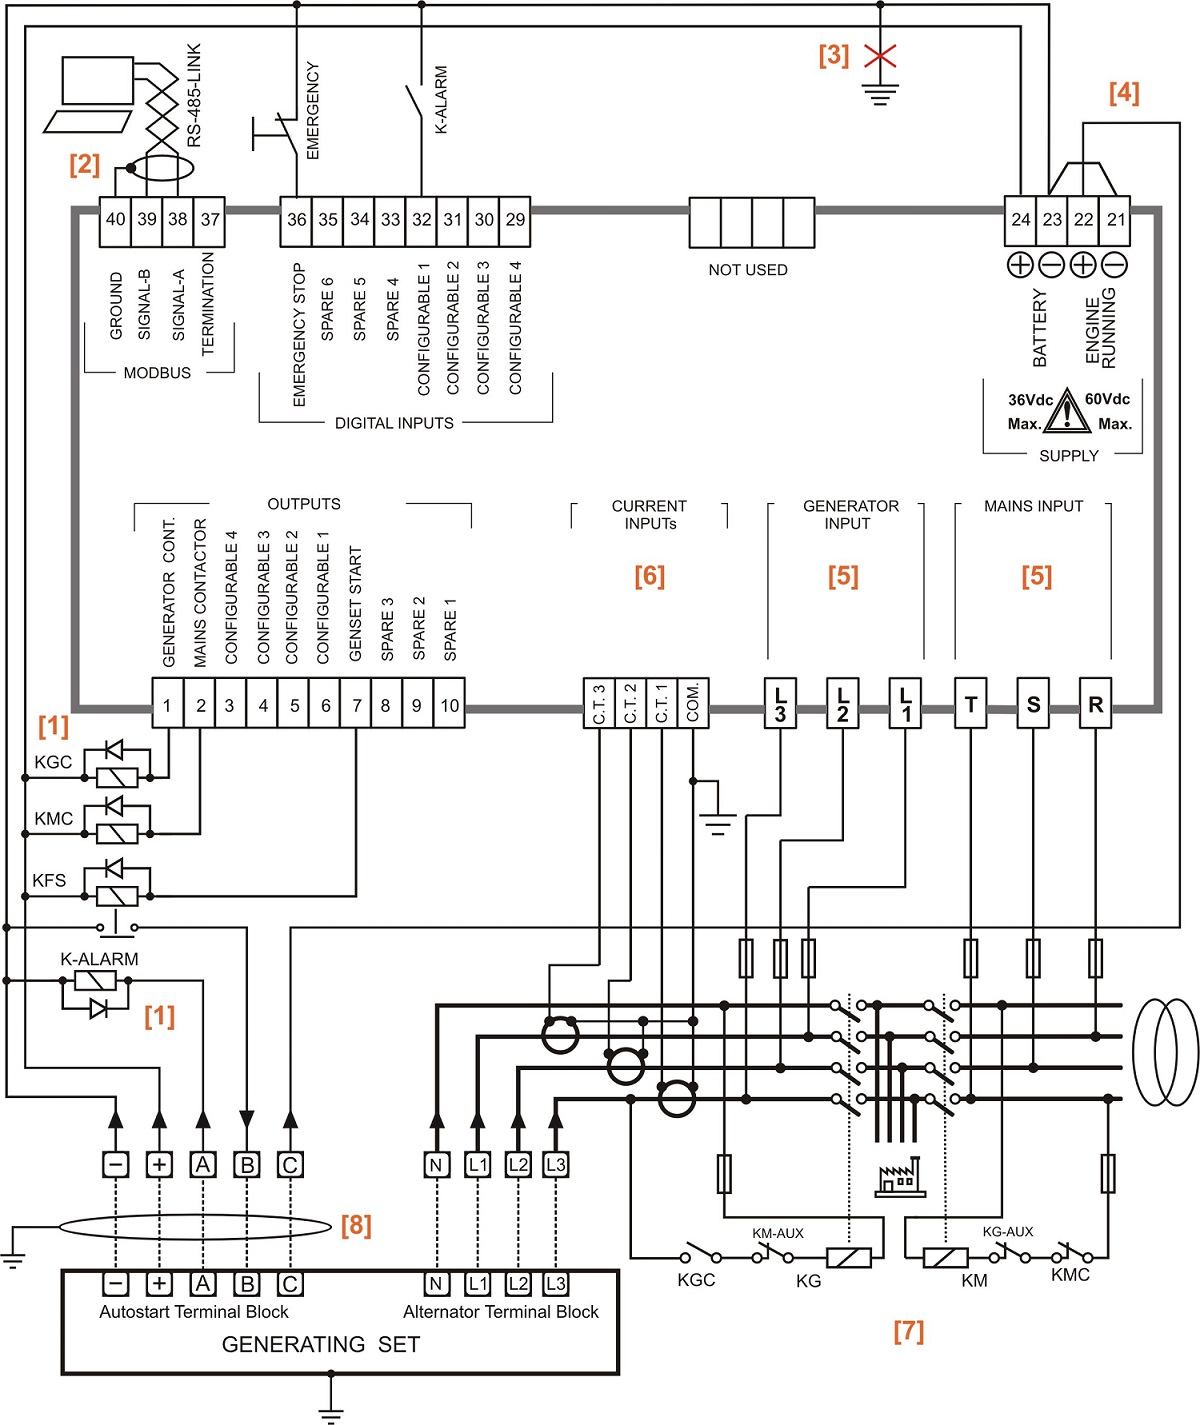 Be28 Automatic Transfer Switch Controller Connections ats wiring diagram ats panel wiring diagram \u2022 wiring diagram  at mifinder.co